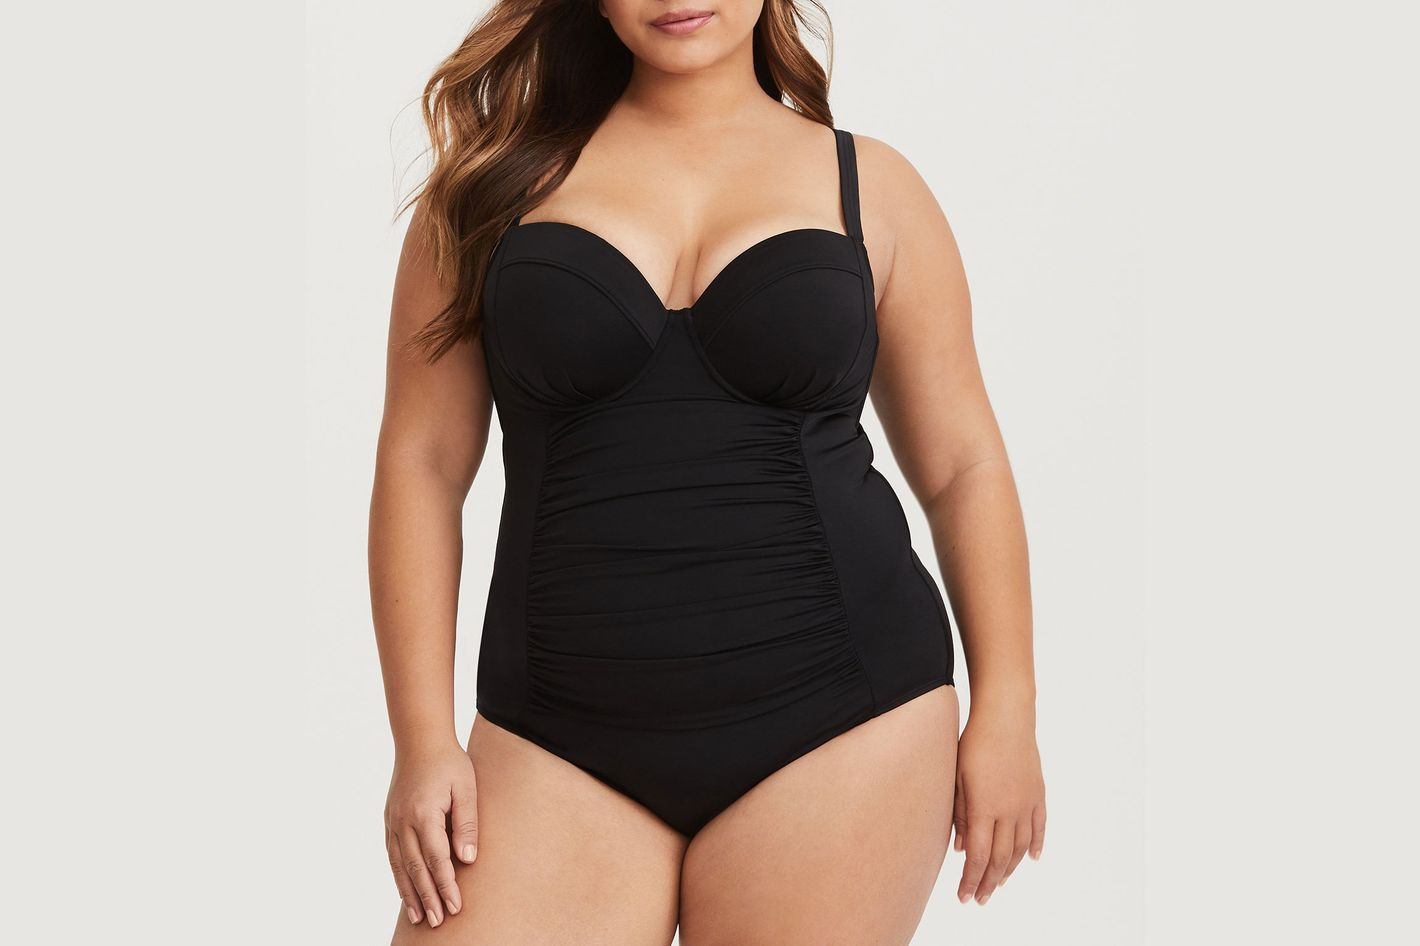 0853507b86 15 Best One-Piece Swimsuits for Women 2018